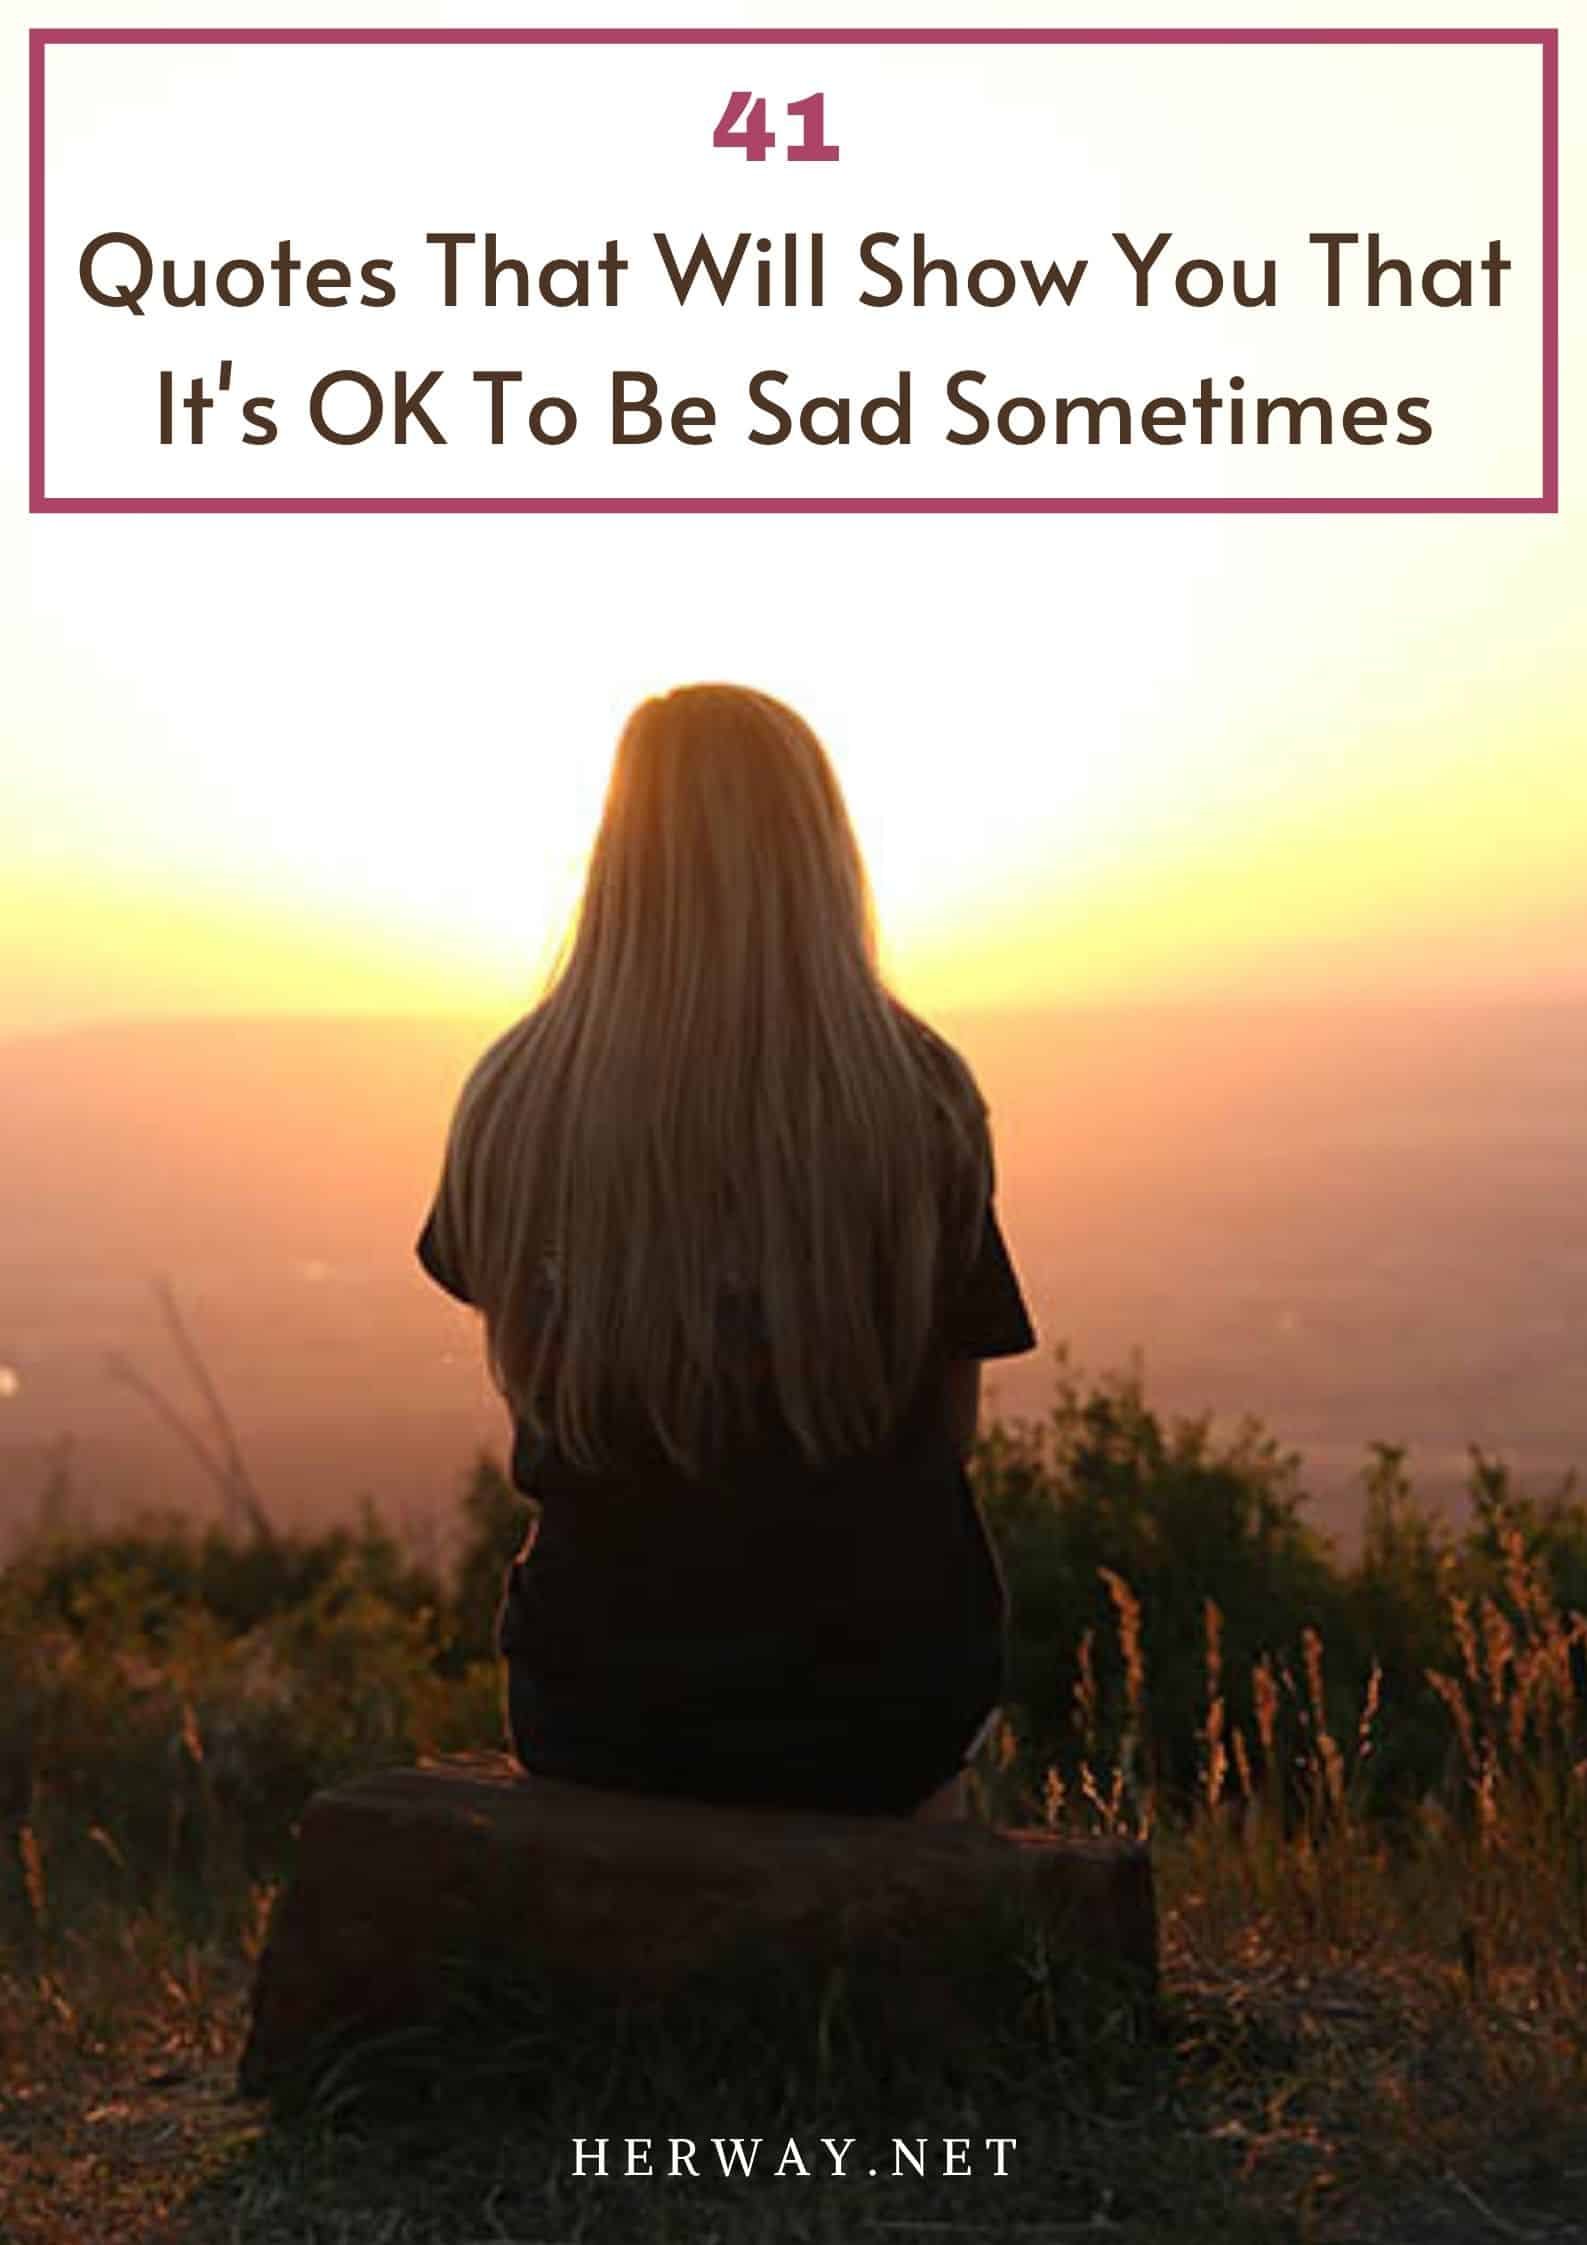 41 Quotes That Will Show You That It's OK To Be Sad Sometimes